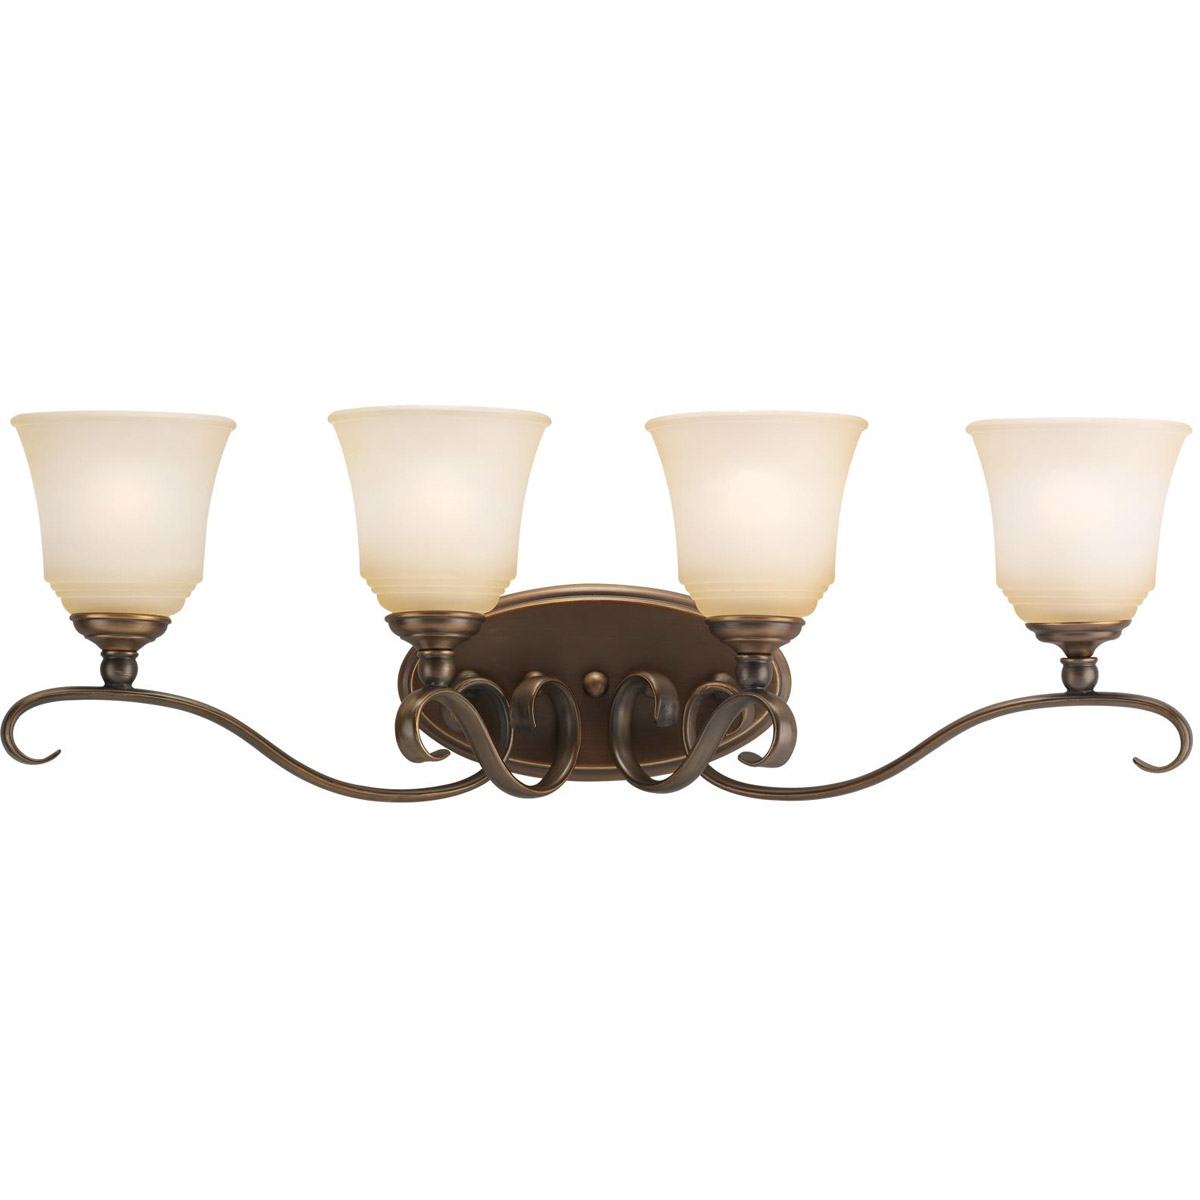 Sea Gull 44382-829 Parkview 4 Light 32 inch Russet Bronze Bath Vanity Wall Light in Ginger Glass photo